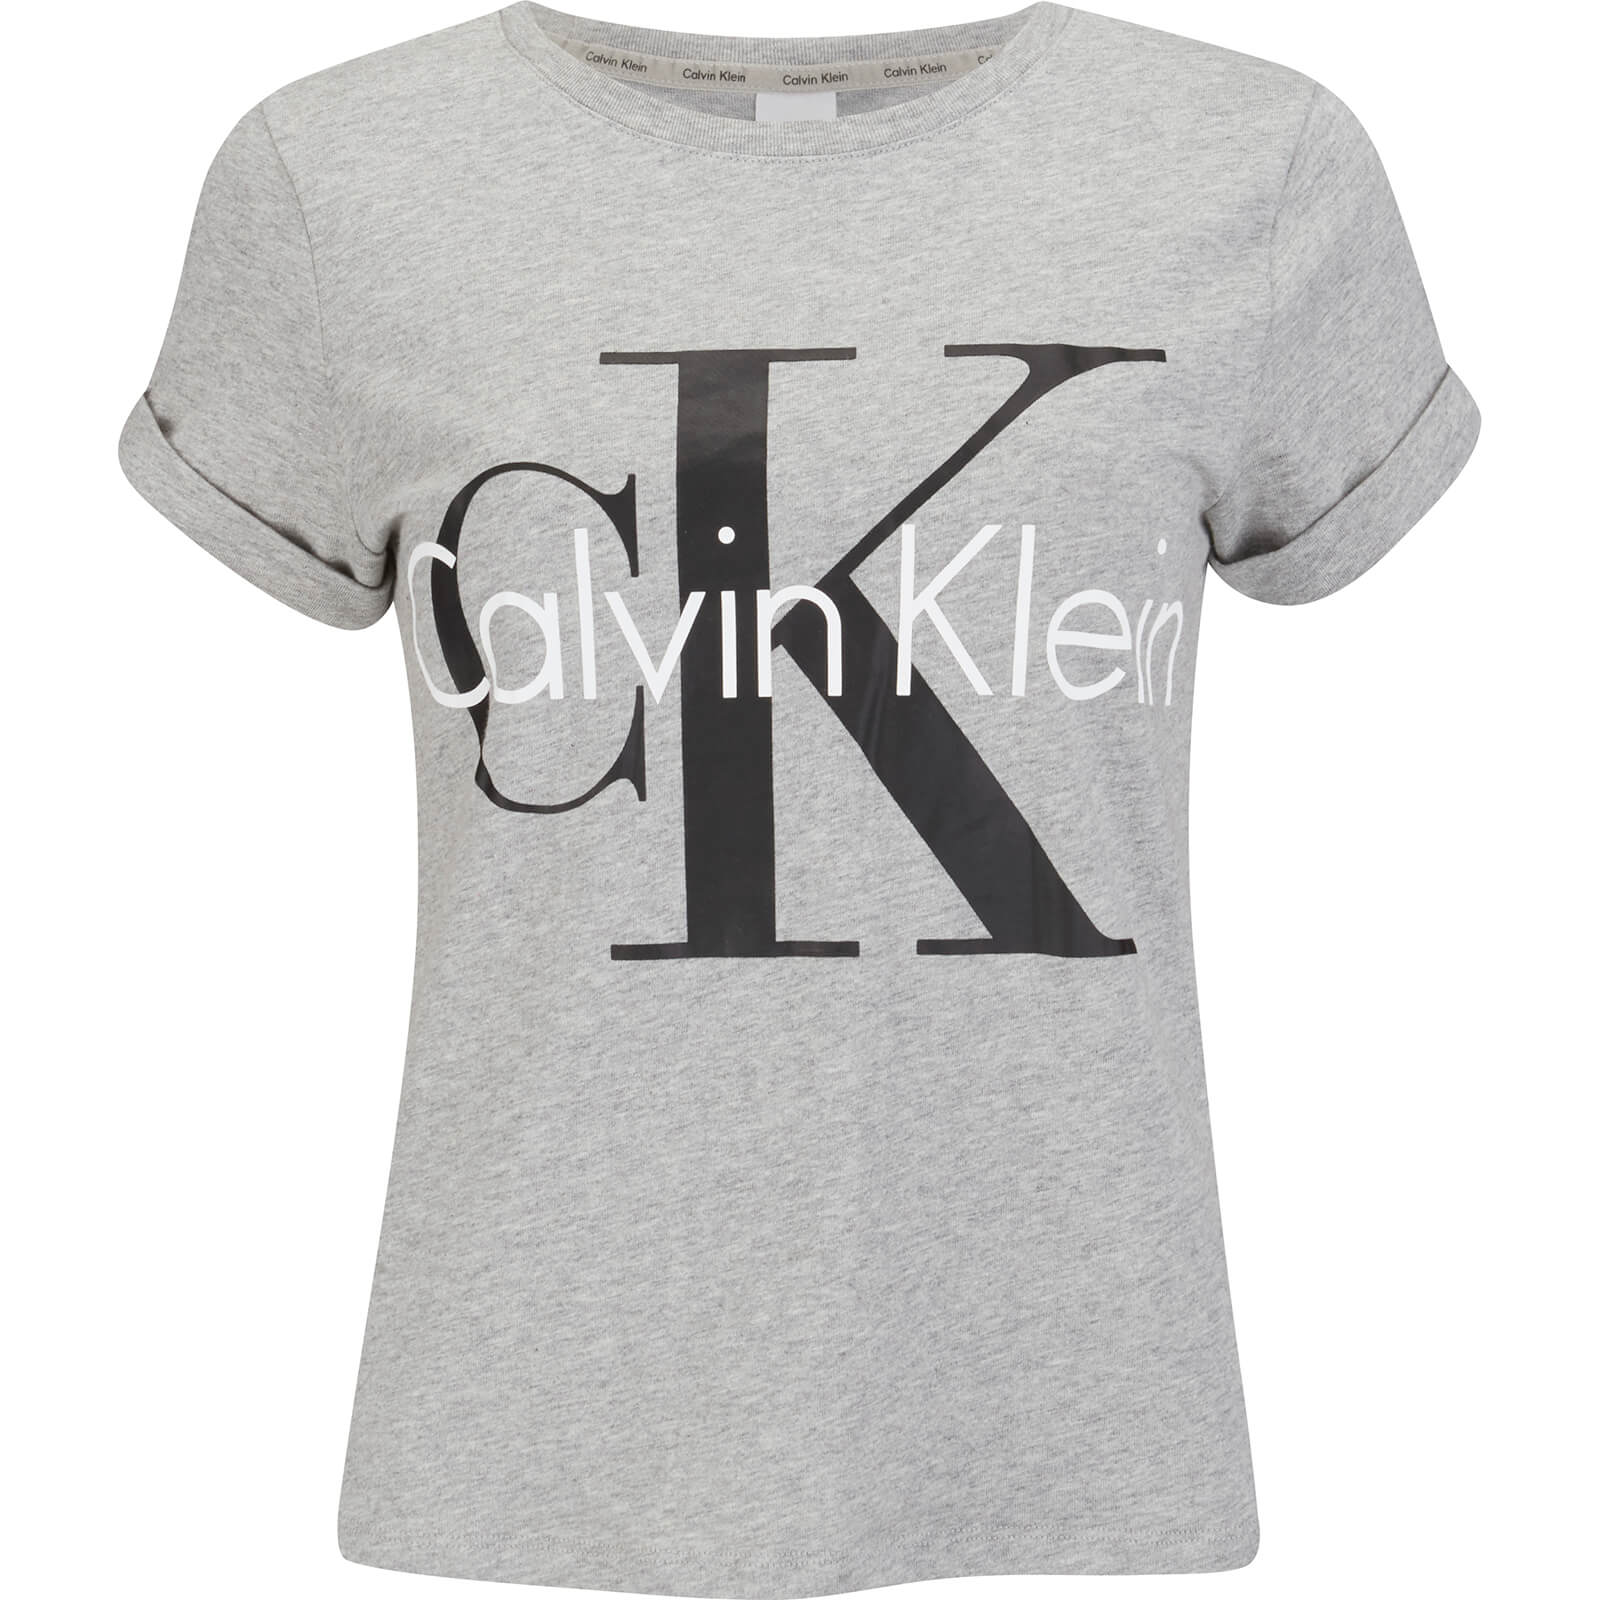 2798f5d43607 Calvin Klein Women s Logo Short Sleeve Crew Neck T-Shirt - Grey Heather -  Free UK Delivery over £50